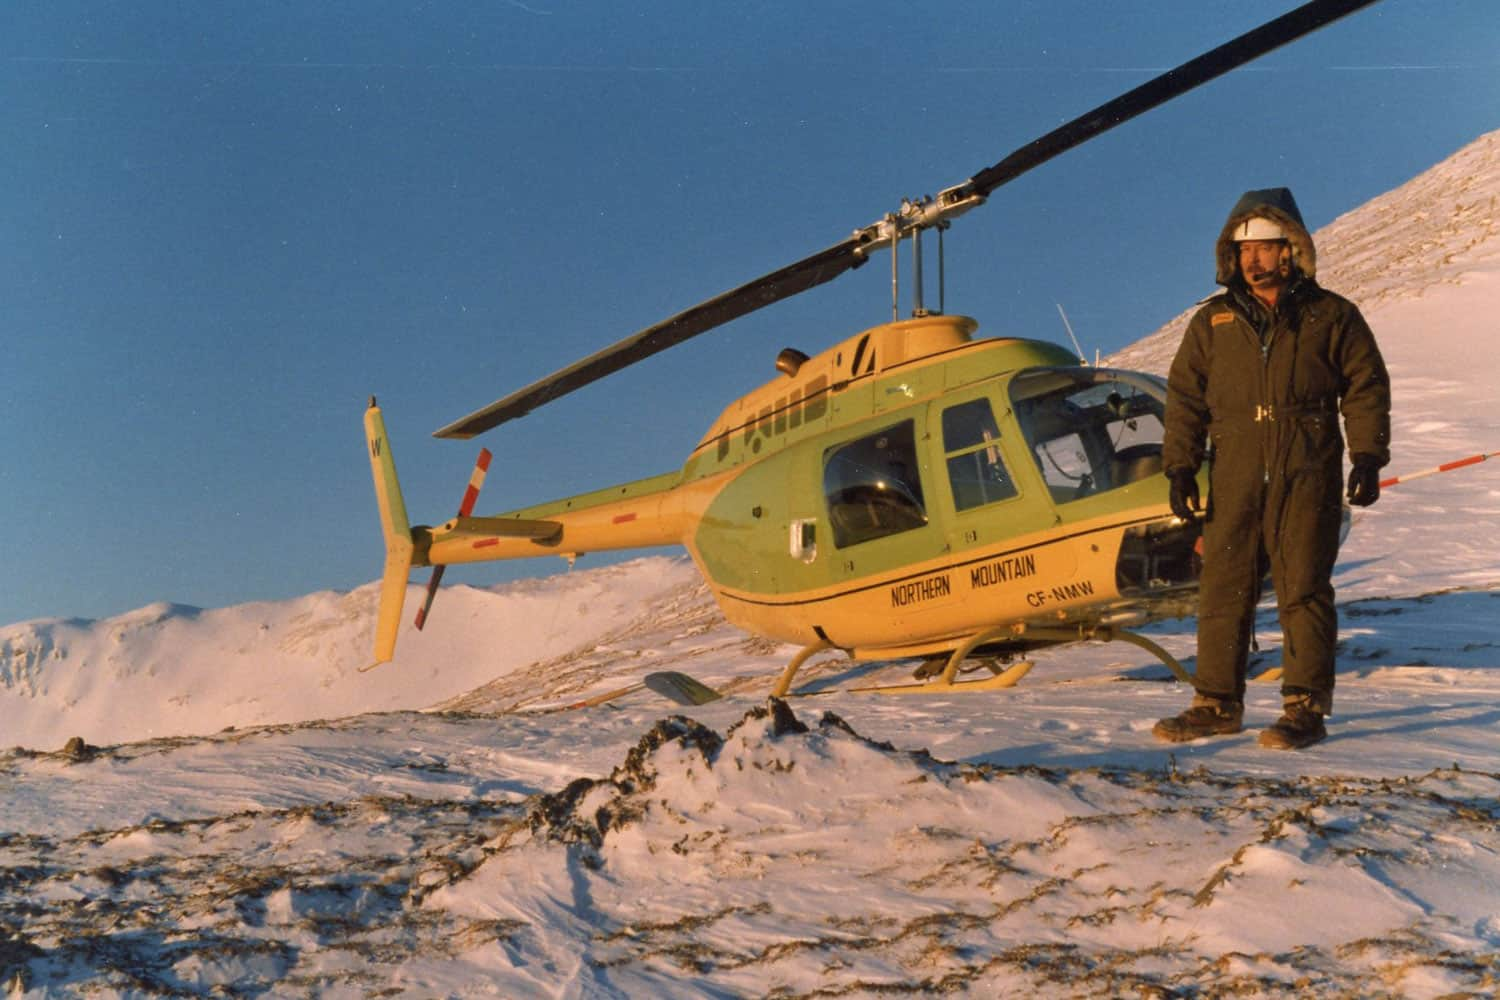 Helicopter on contorl survey for BC Rail tunnels, 1980.